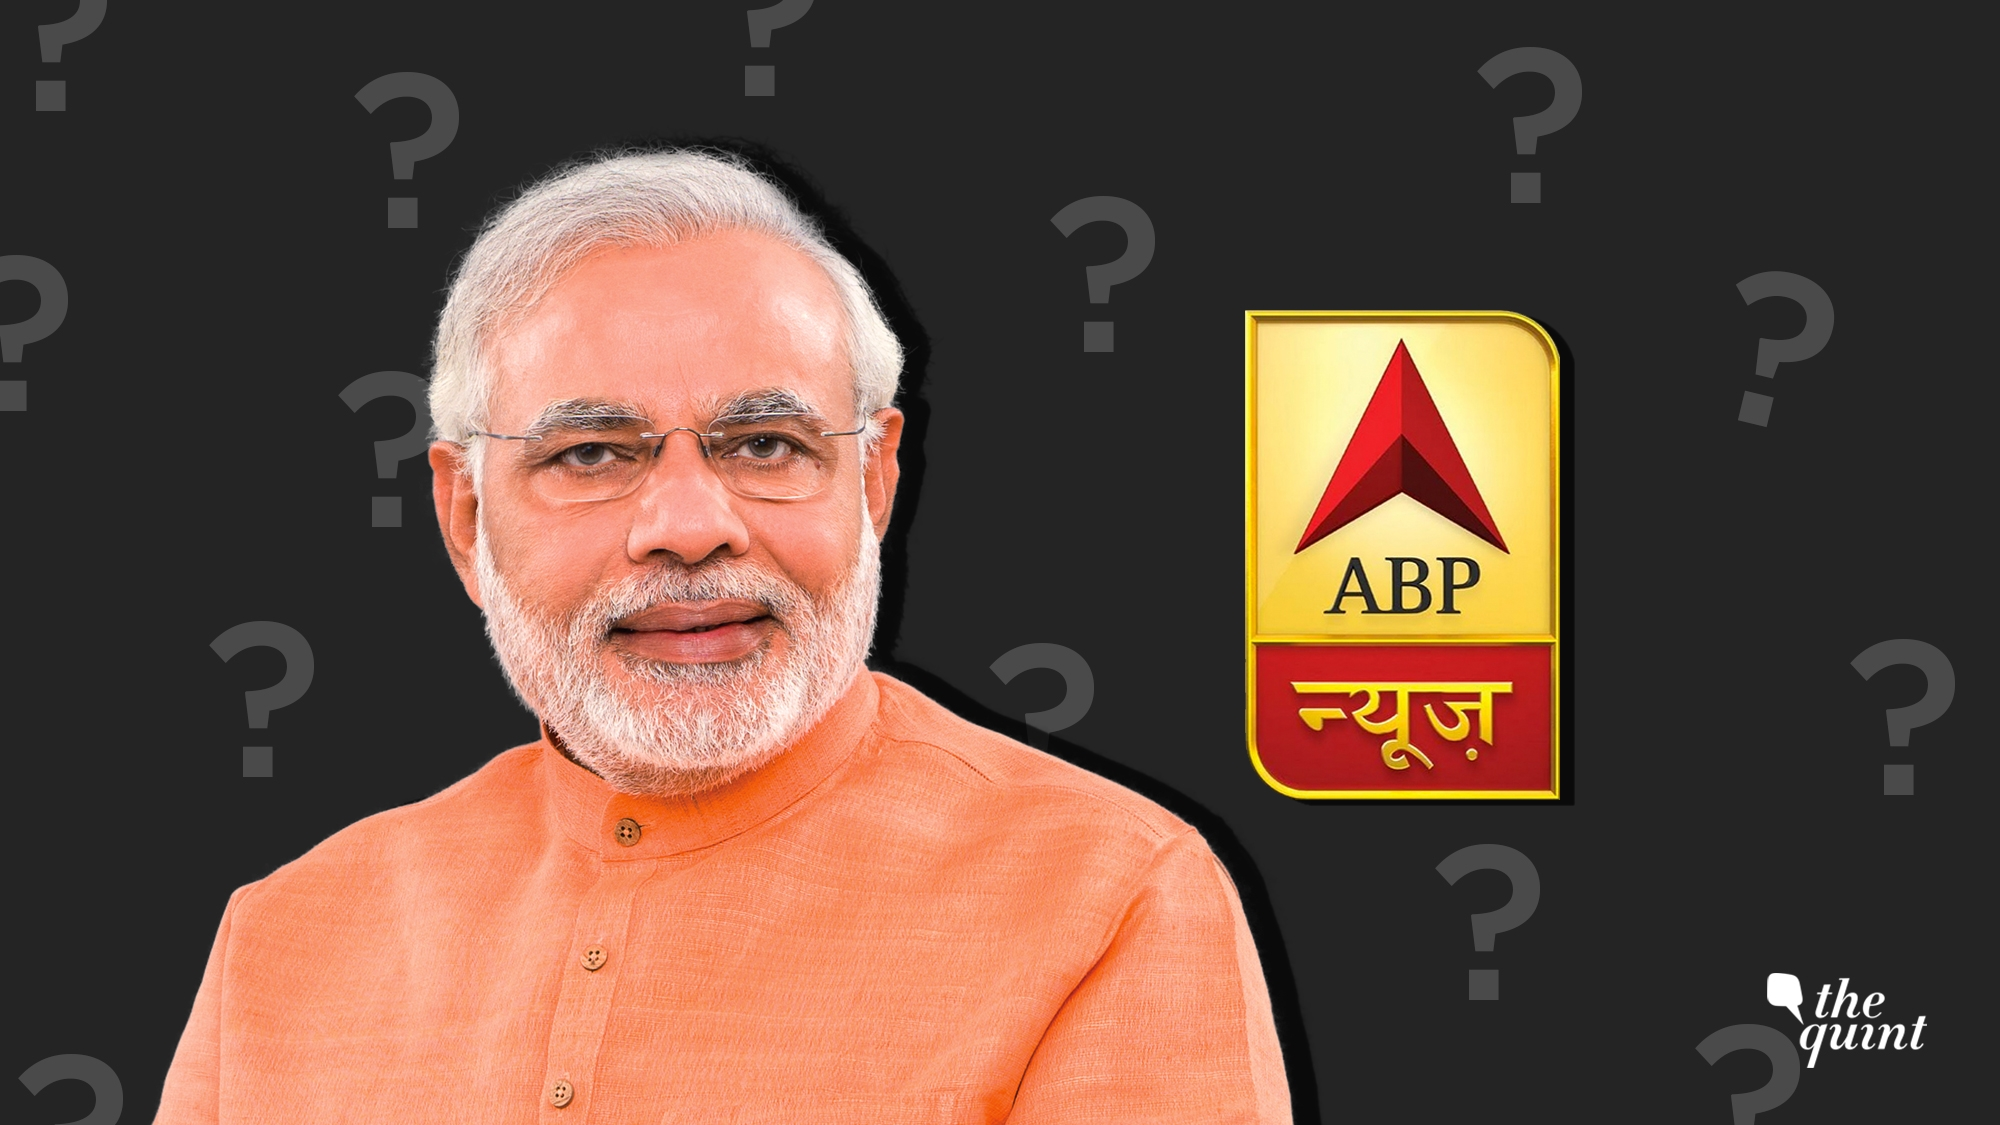 'You Fast on Navratri?' Decoding ABP's 'Tough' Questions to Modi